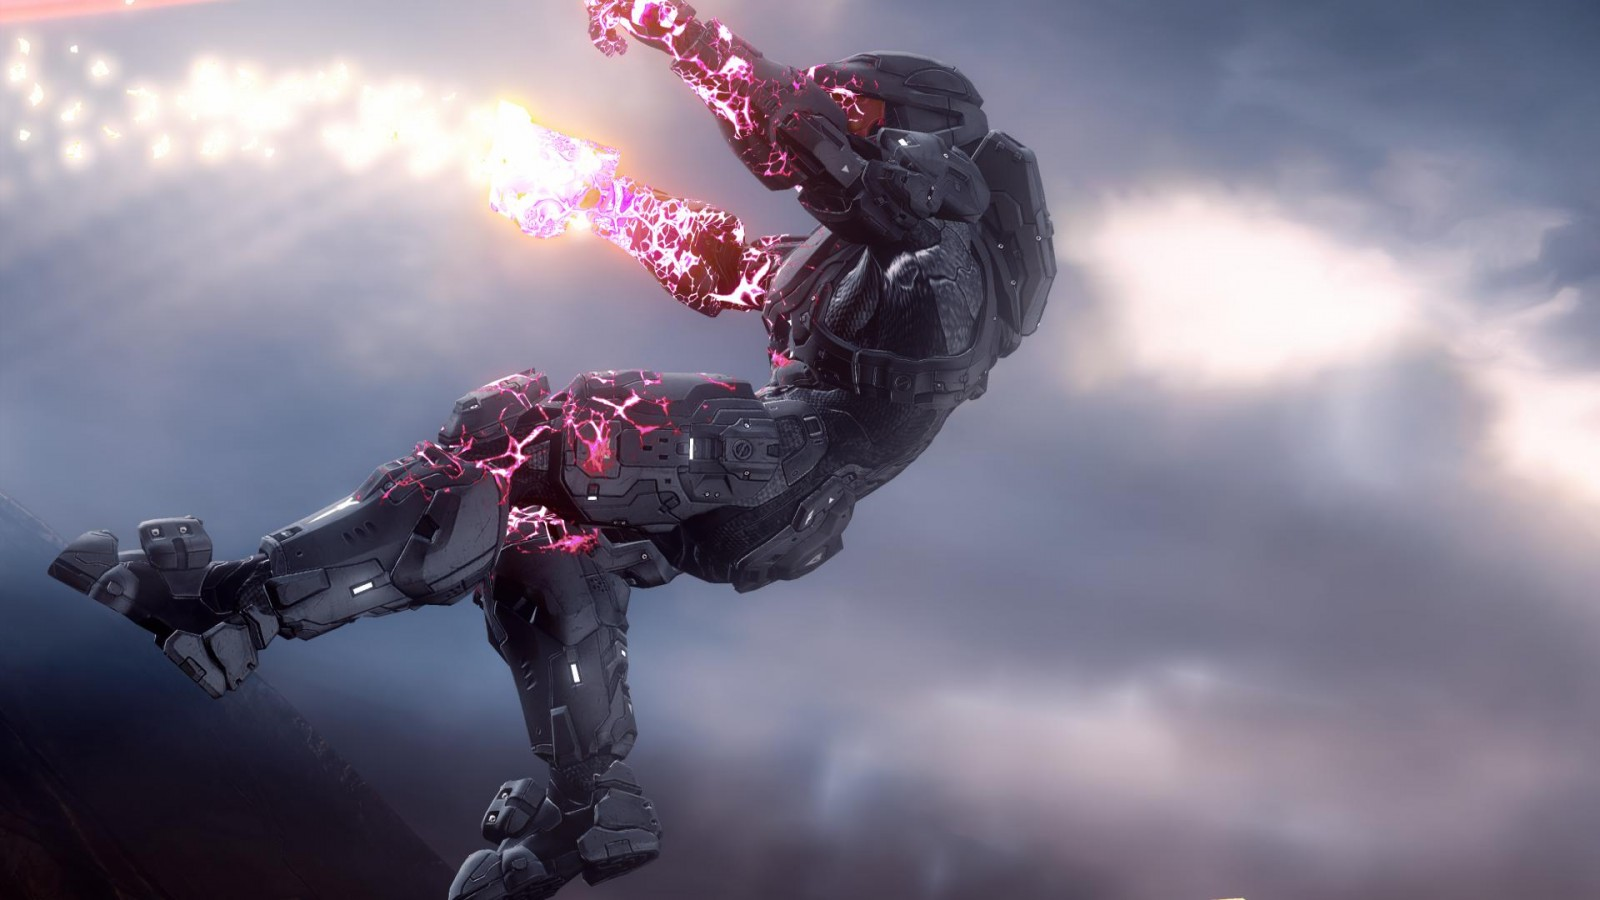 2015 Halo 5 Guardians Wallpaper 1600x900 1600x900